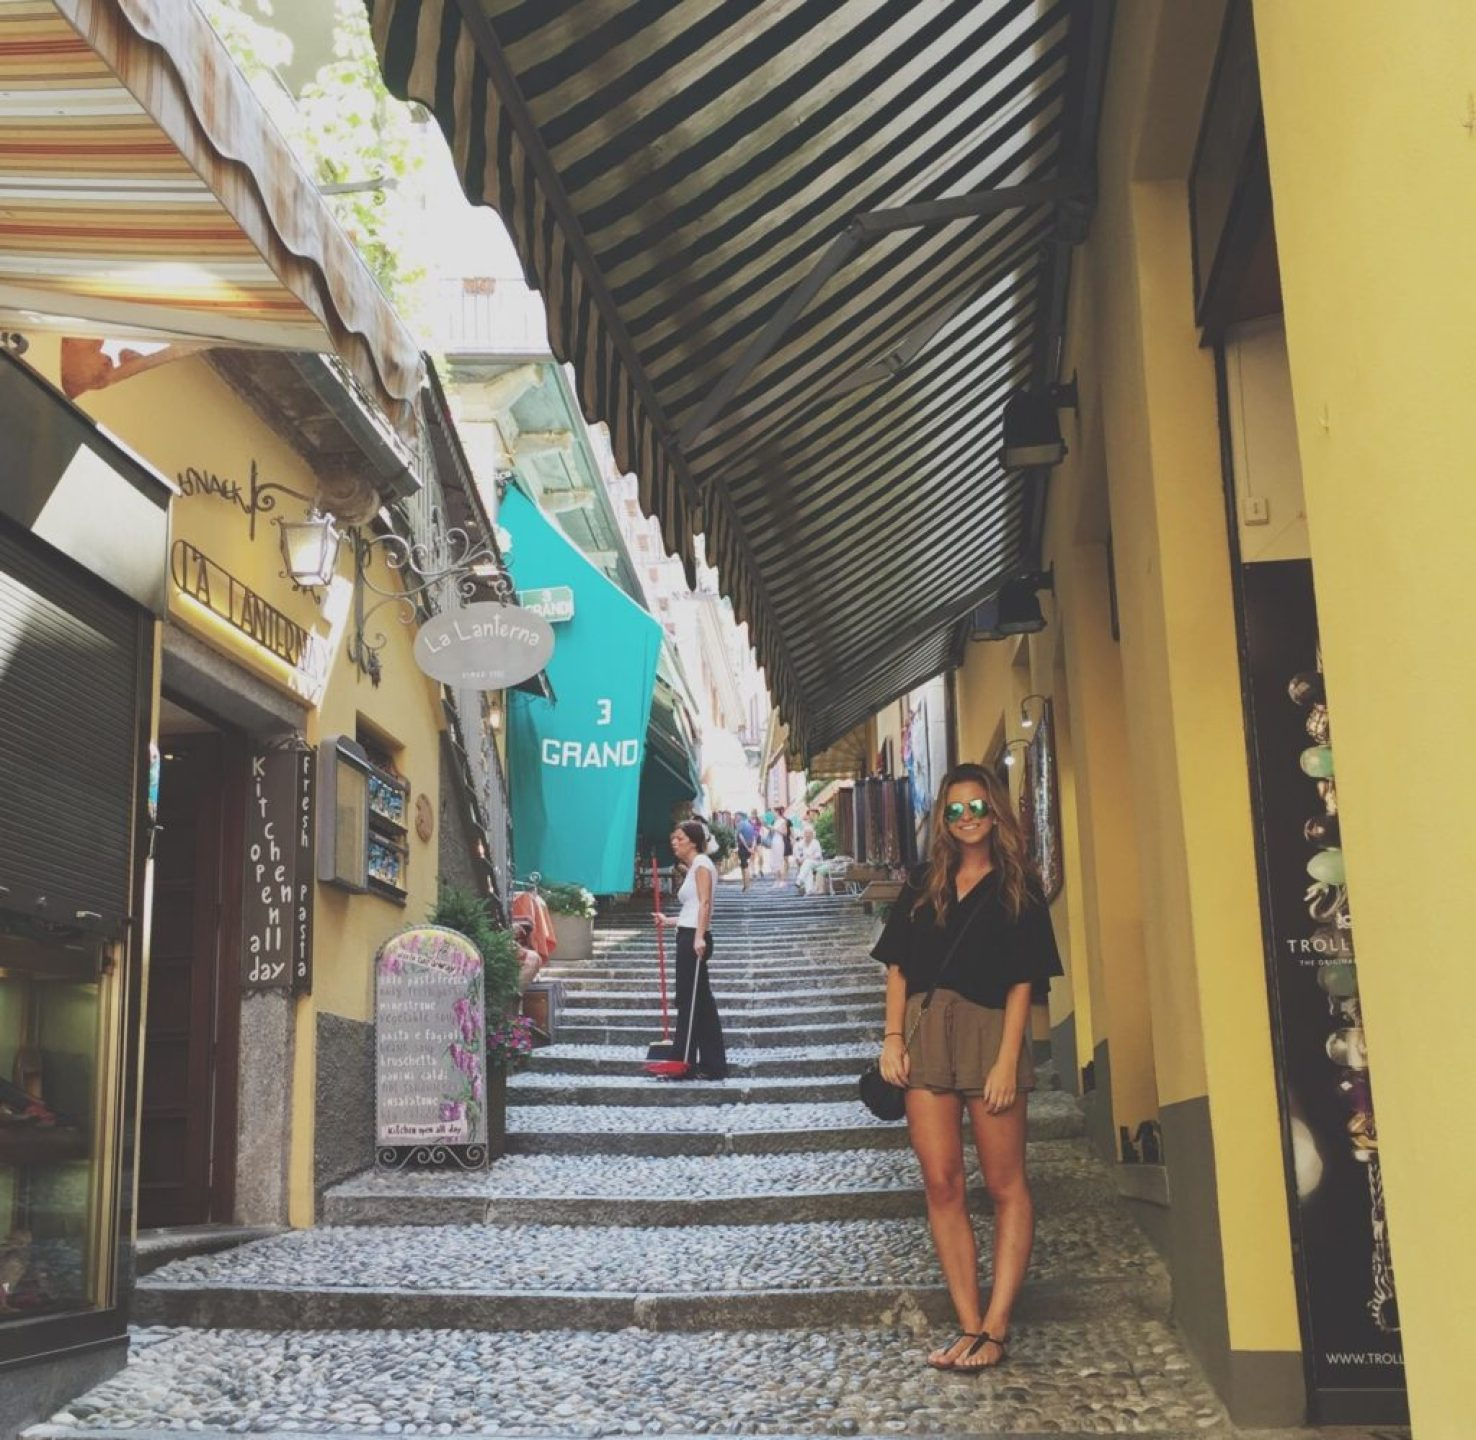 In the summer of 2015, I spent 5 weeks nannying / being an au pair in Italy on Lake Como! Read about my experience, where I traveled, and how I got the job!